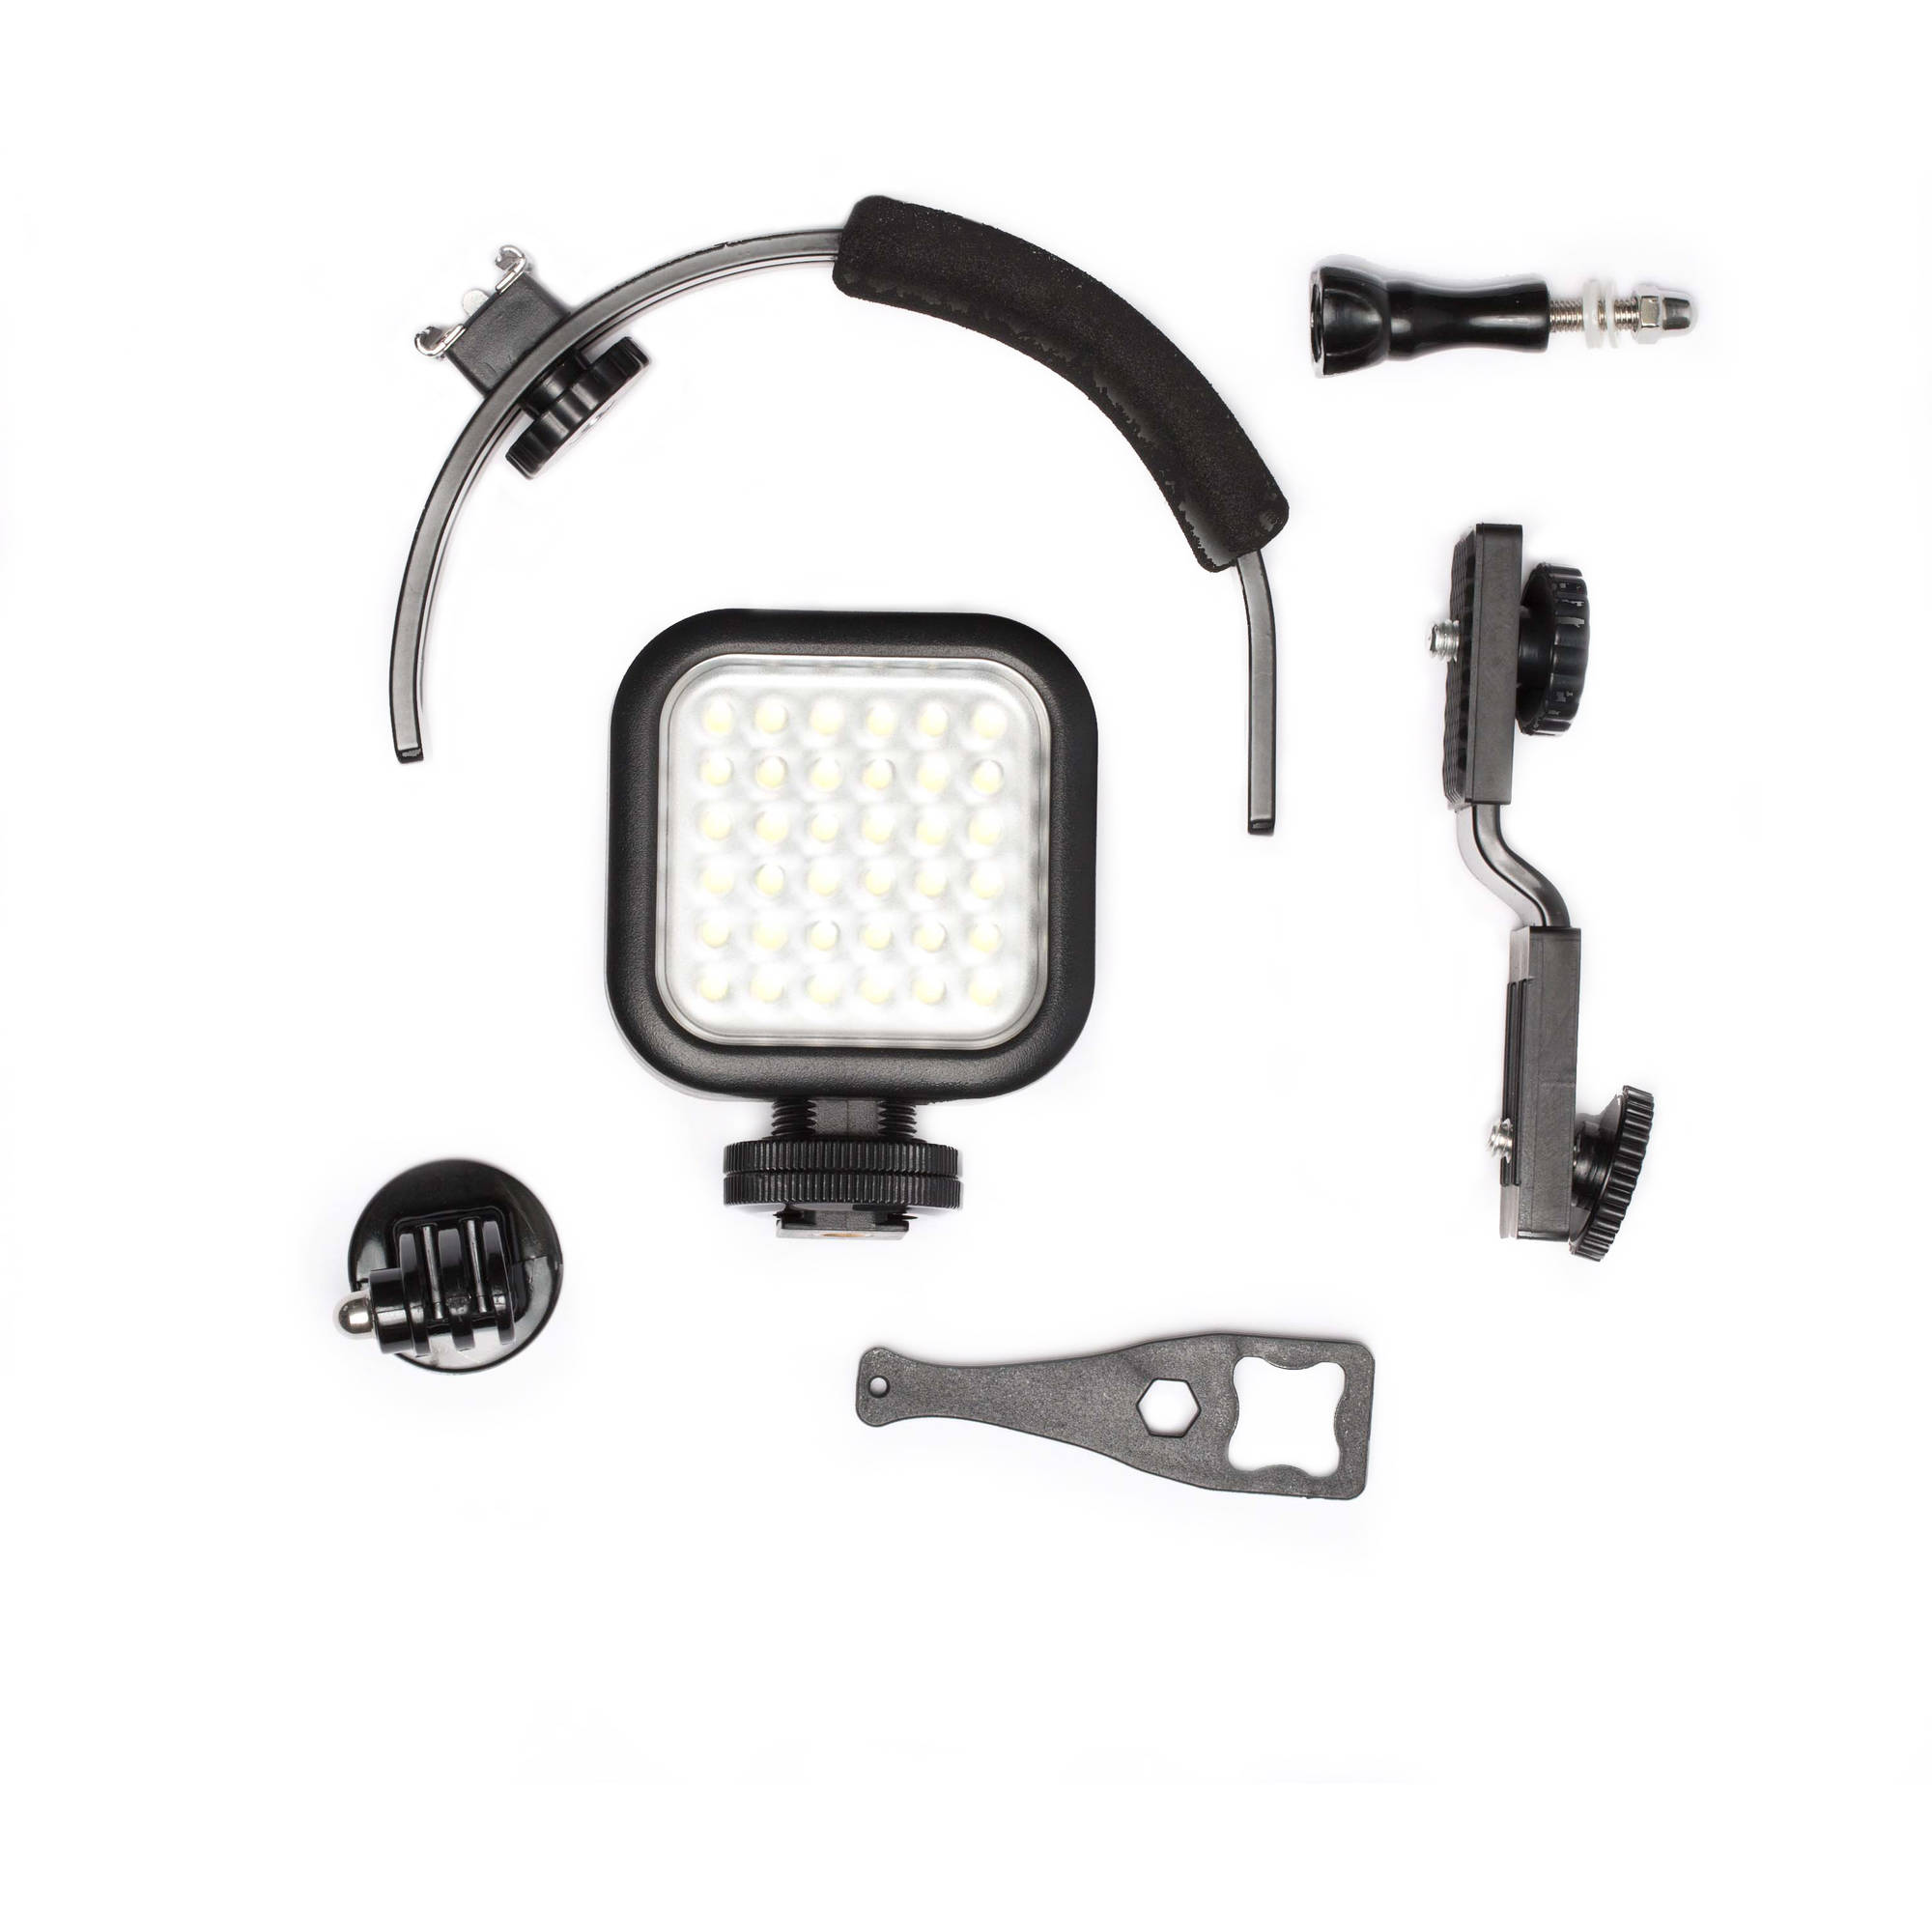 Filemate LED Light set Compatible with most cameras & all GoPro HERO series